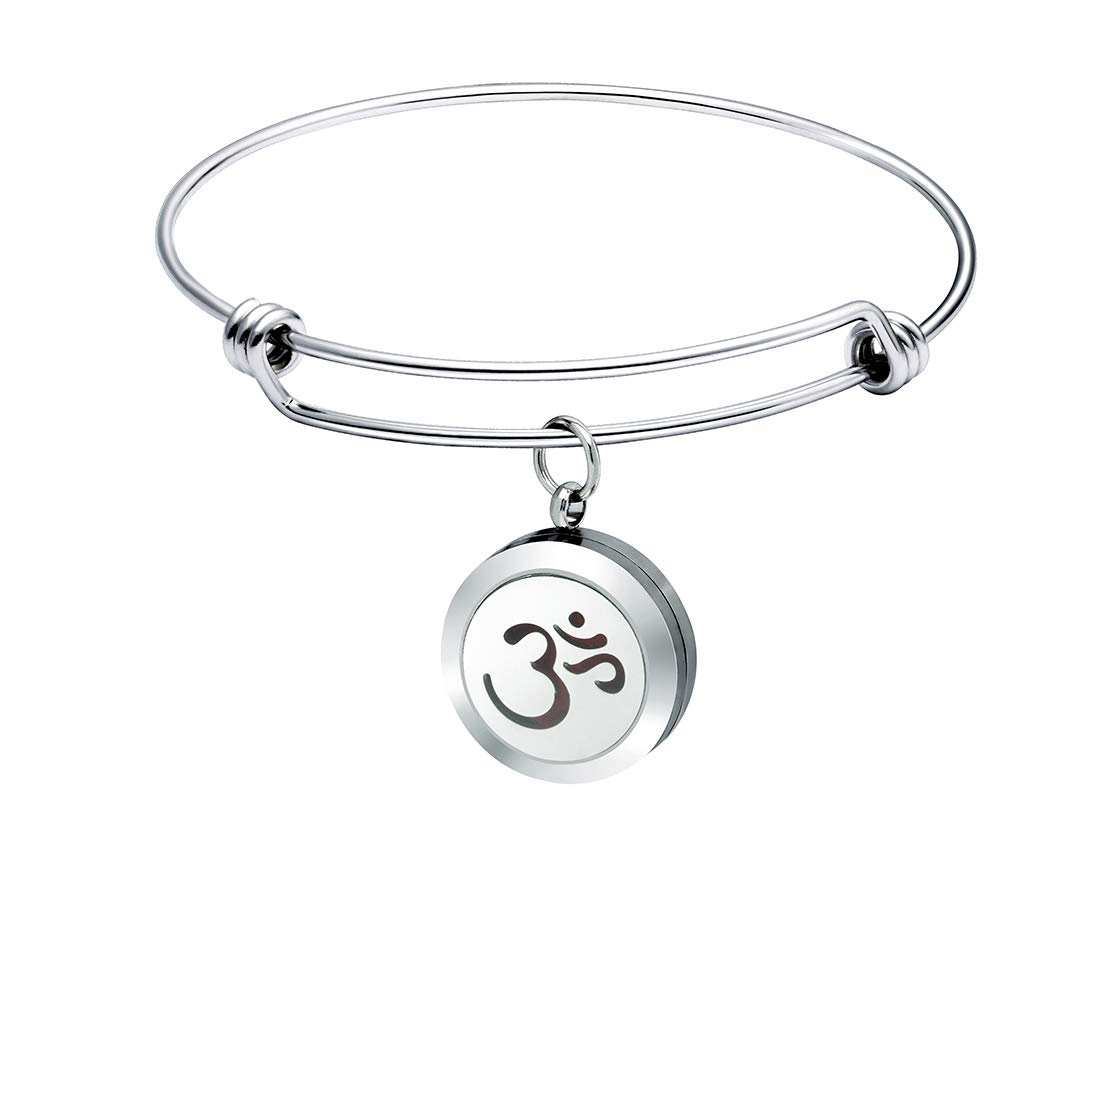 Yoga Jewelry for Women Essential Oil Diffuser Bracelet Aromatherapy Expandable Bangle Birthday Gifts for Her 8 Colors Pads Stainless Steel